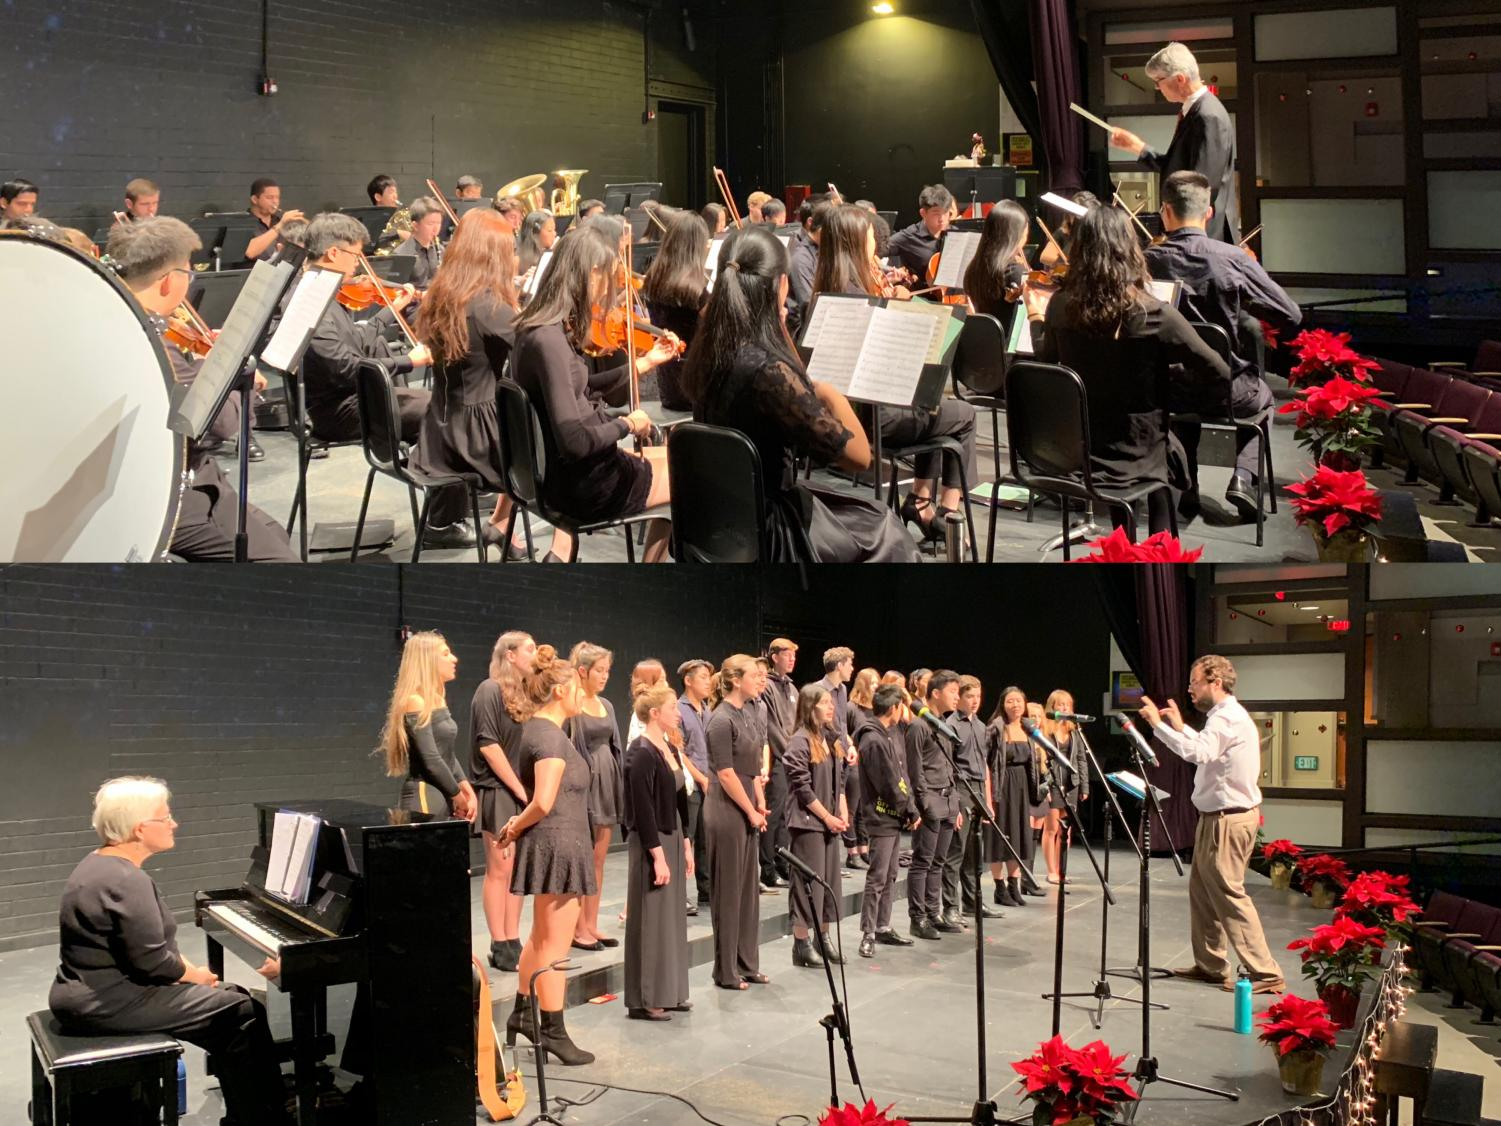 The Webb Schools orchestra and chamber singers at their final rehearsal before their performance. Graphic courtesy of Vivien Xi